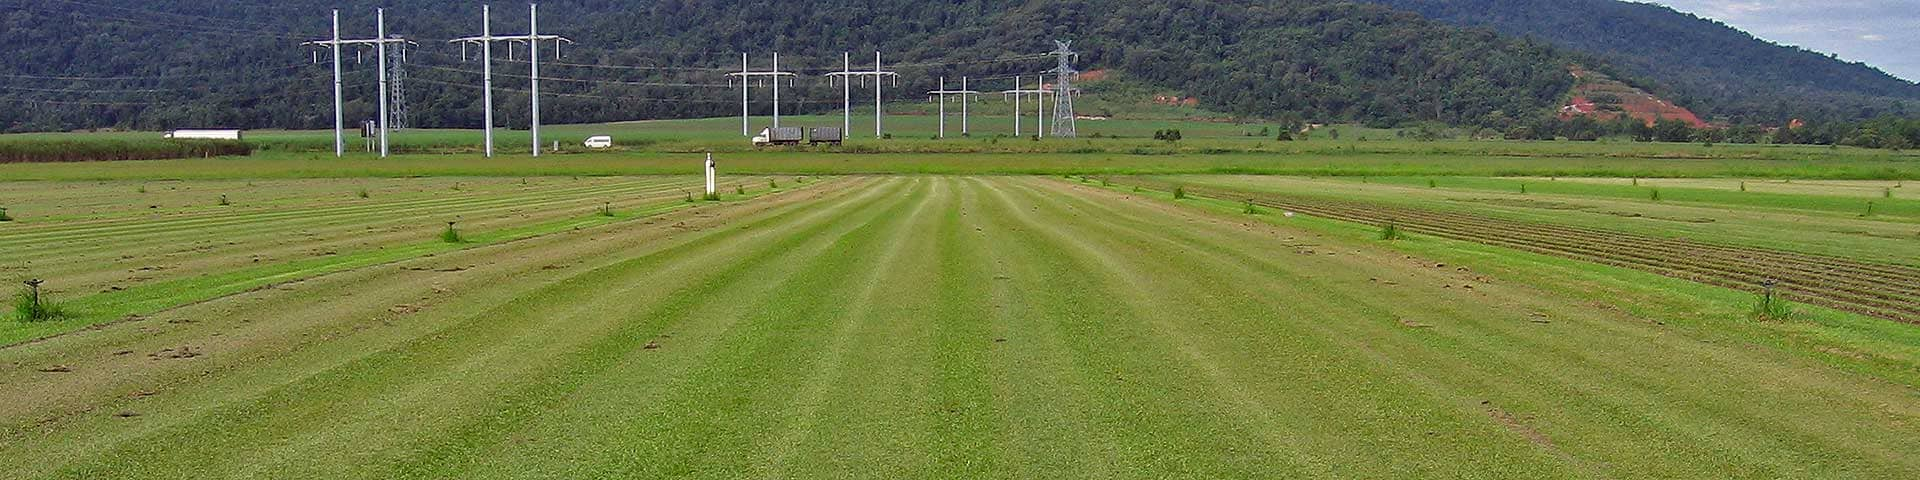 Blenners Turf (Tully)